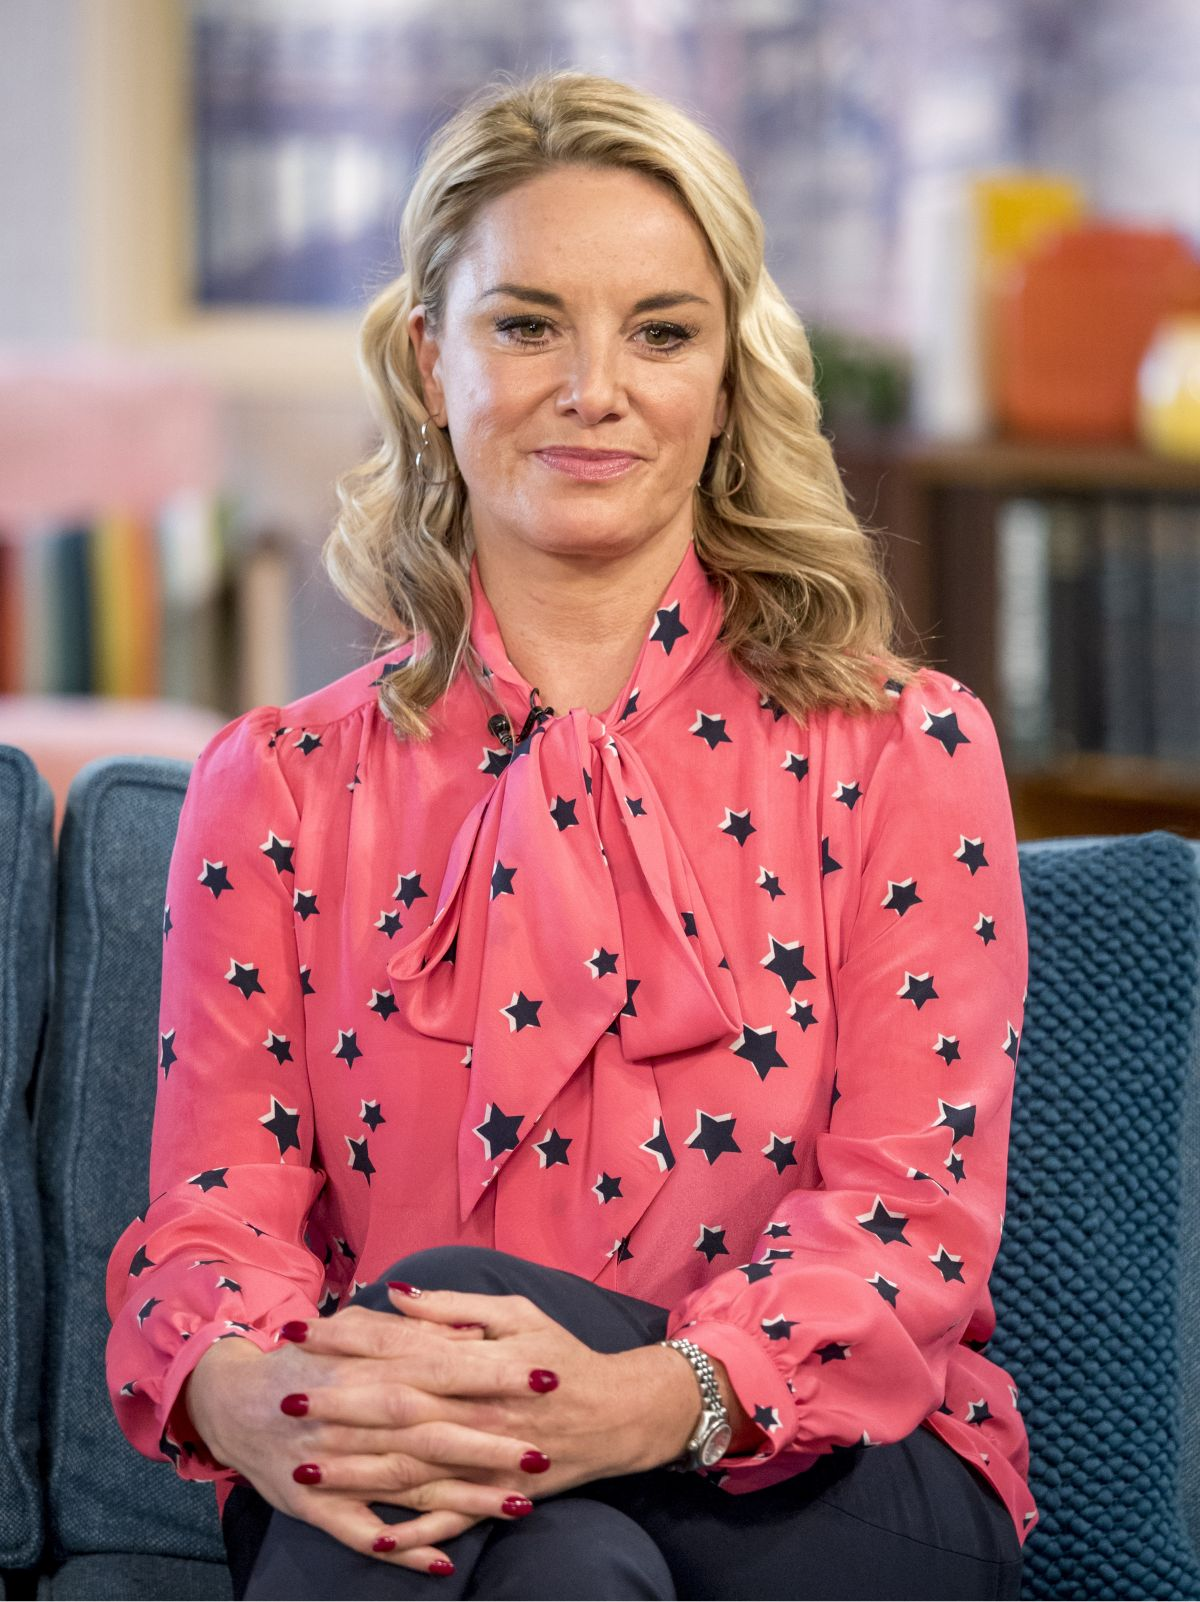 tamzin outhwaite - photo #4